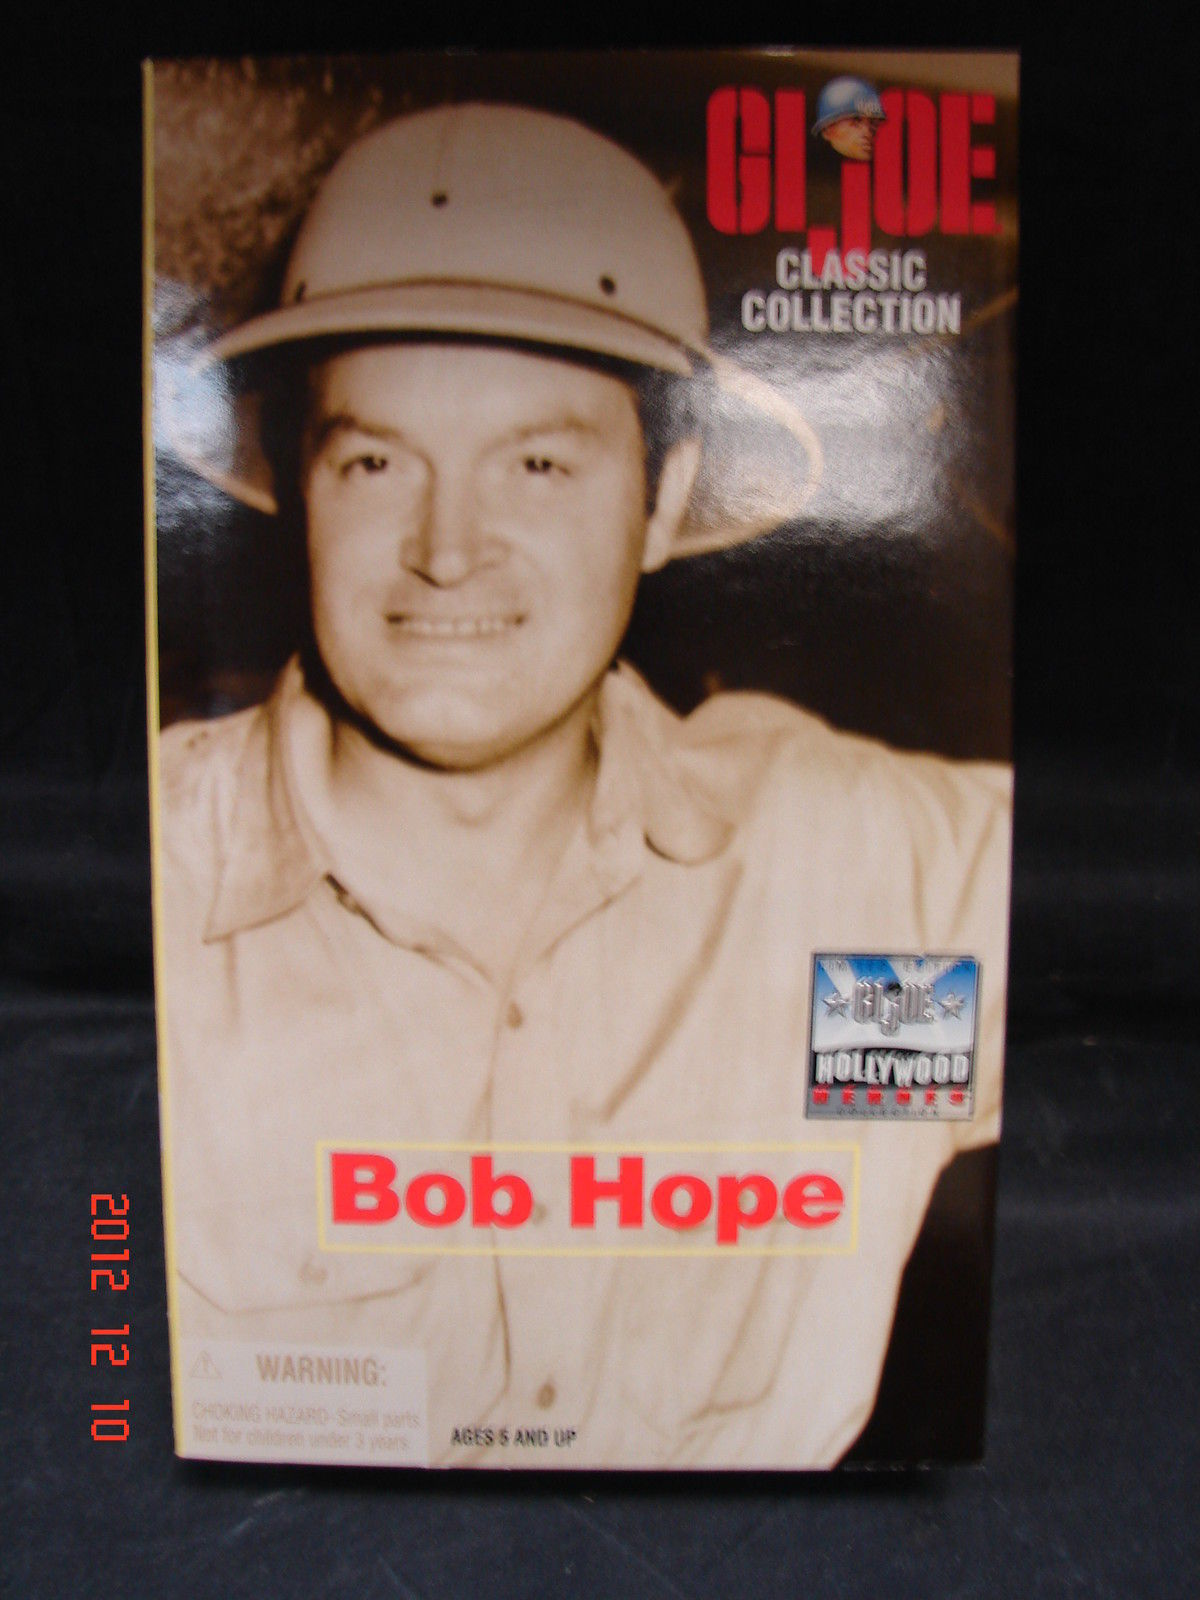 Primary image for GI JOE CLASSIC COLLECTION BOB HOPE FIGURE 1998 - HASBRO